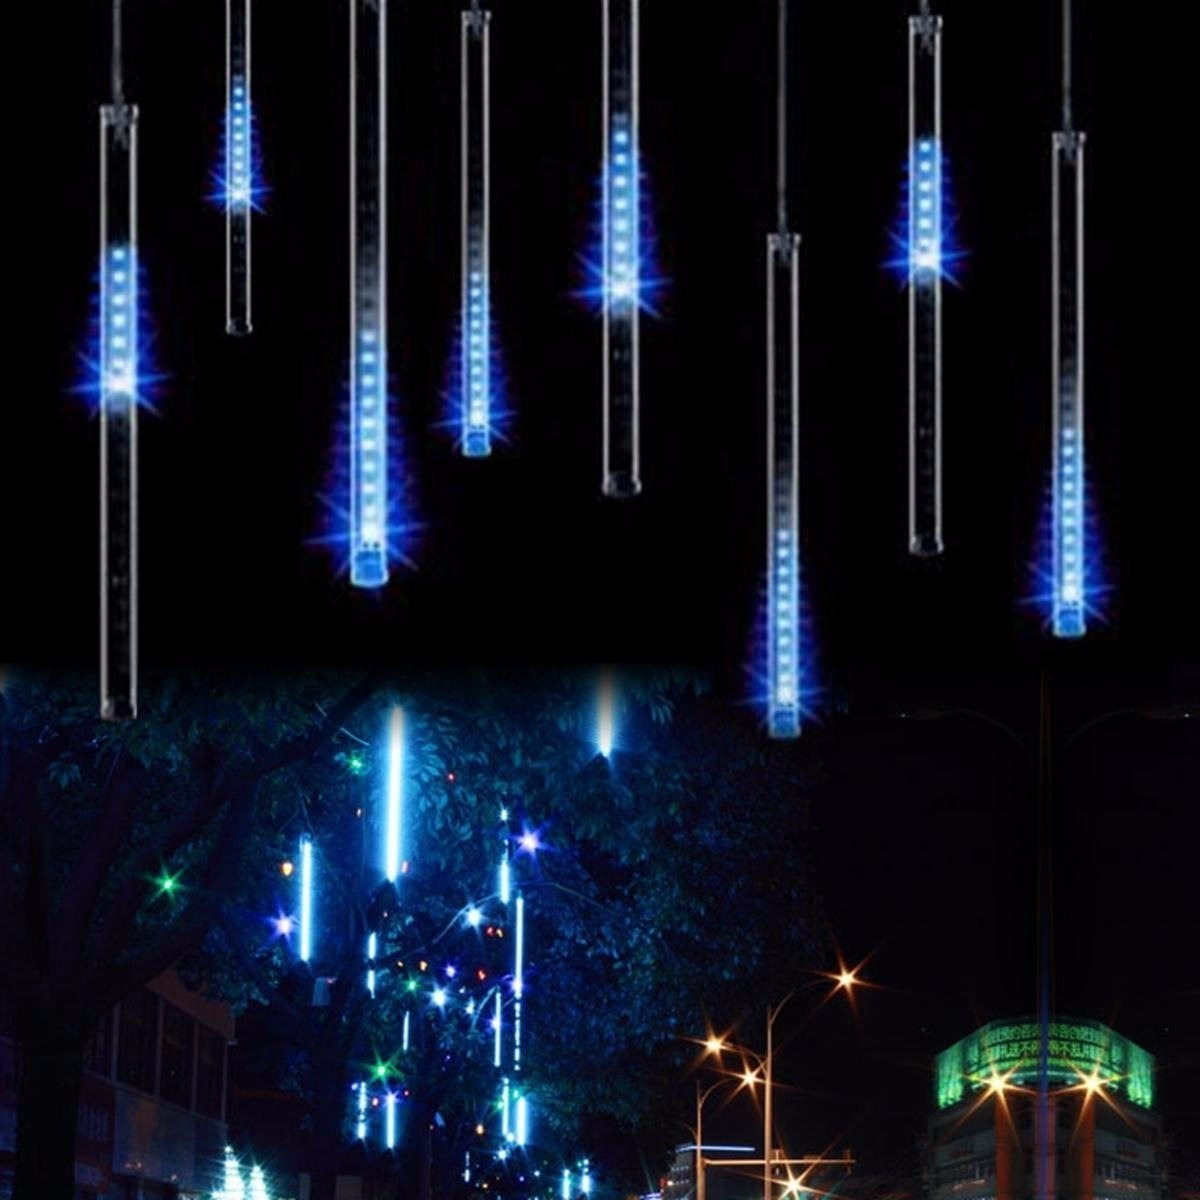 8 luces 30cm lluvia meteoros luces tubos decoracion - Decoracion luces navidad ...